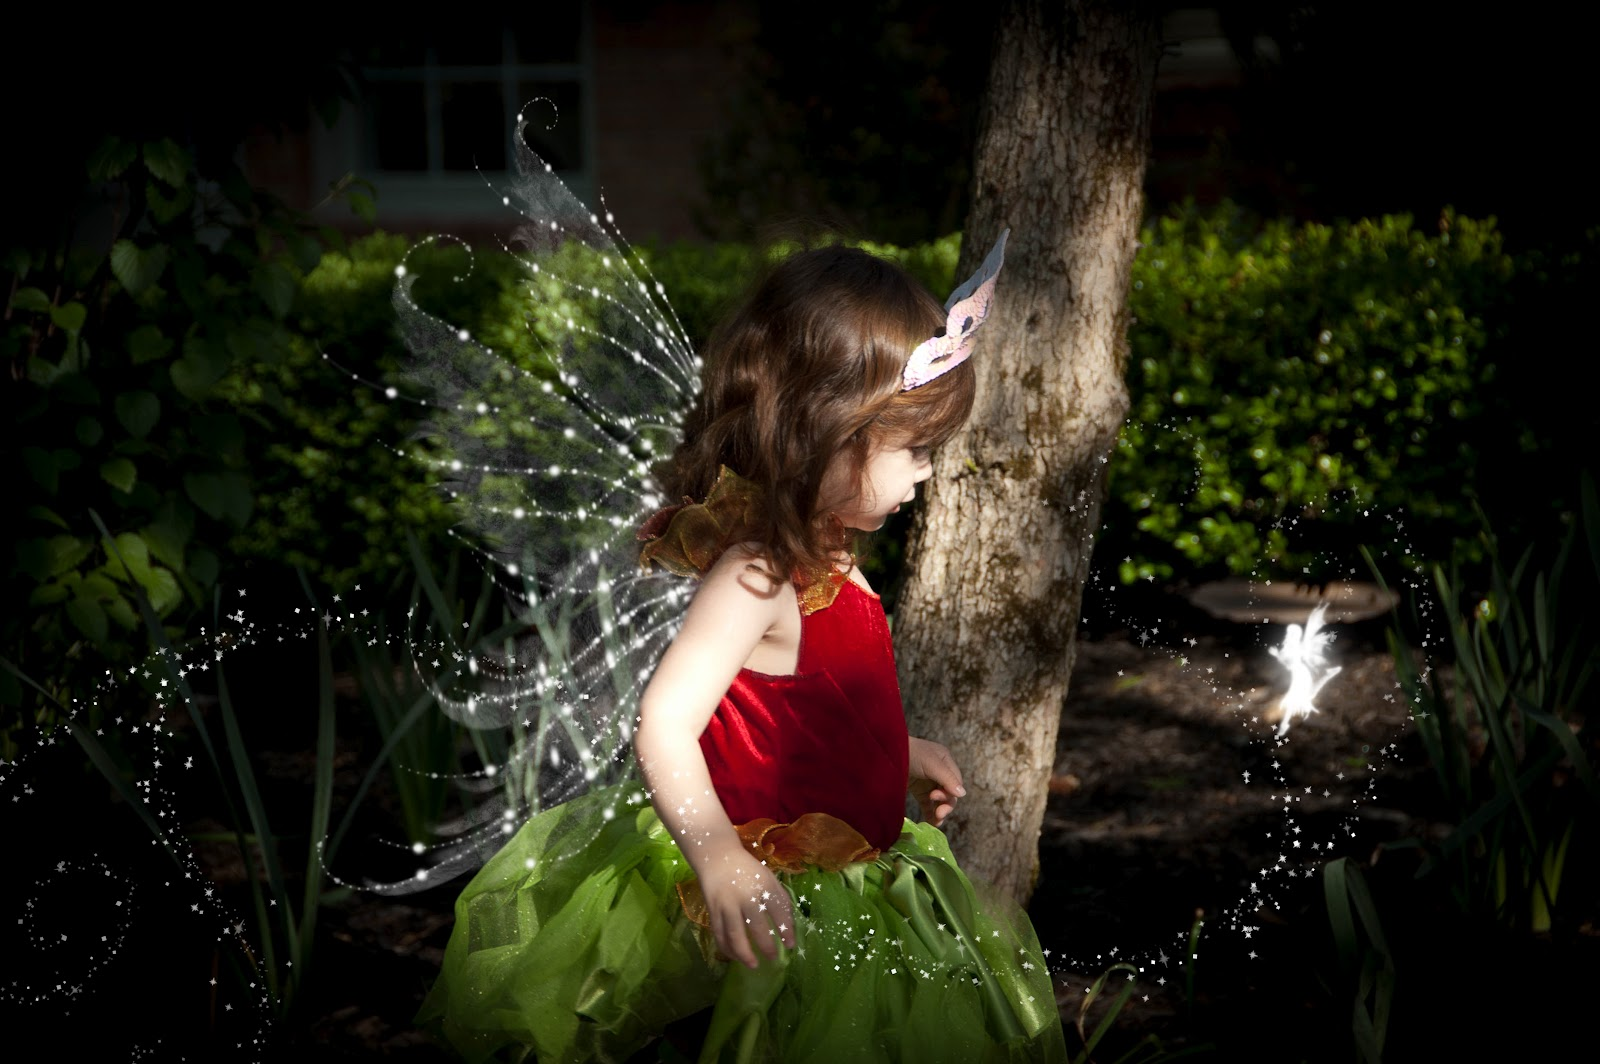 image gallery of real pixies and fairies